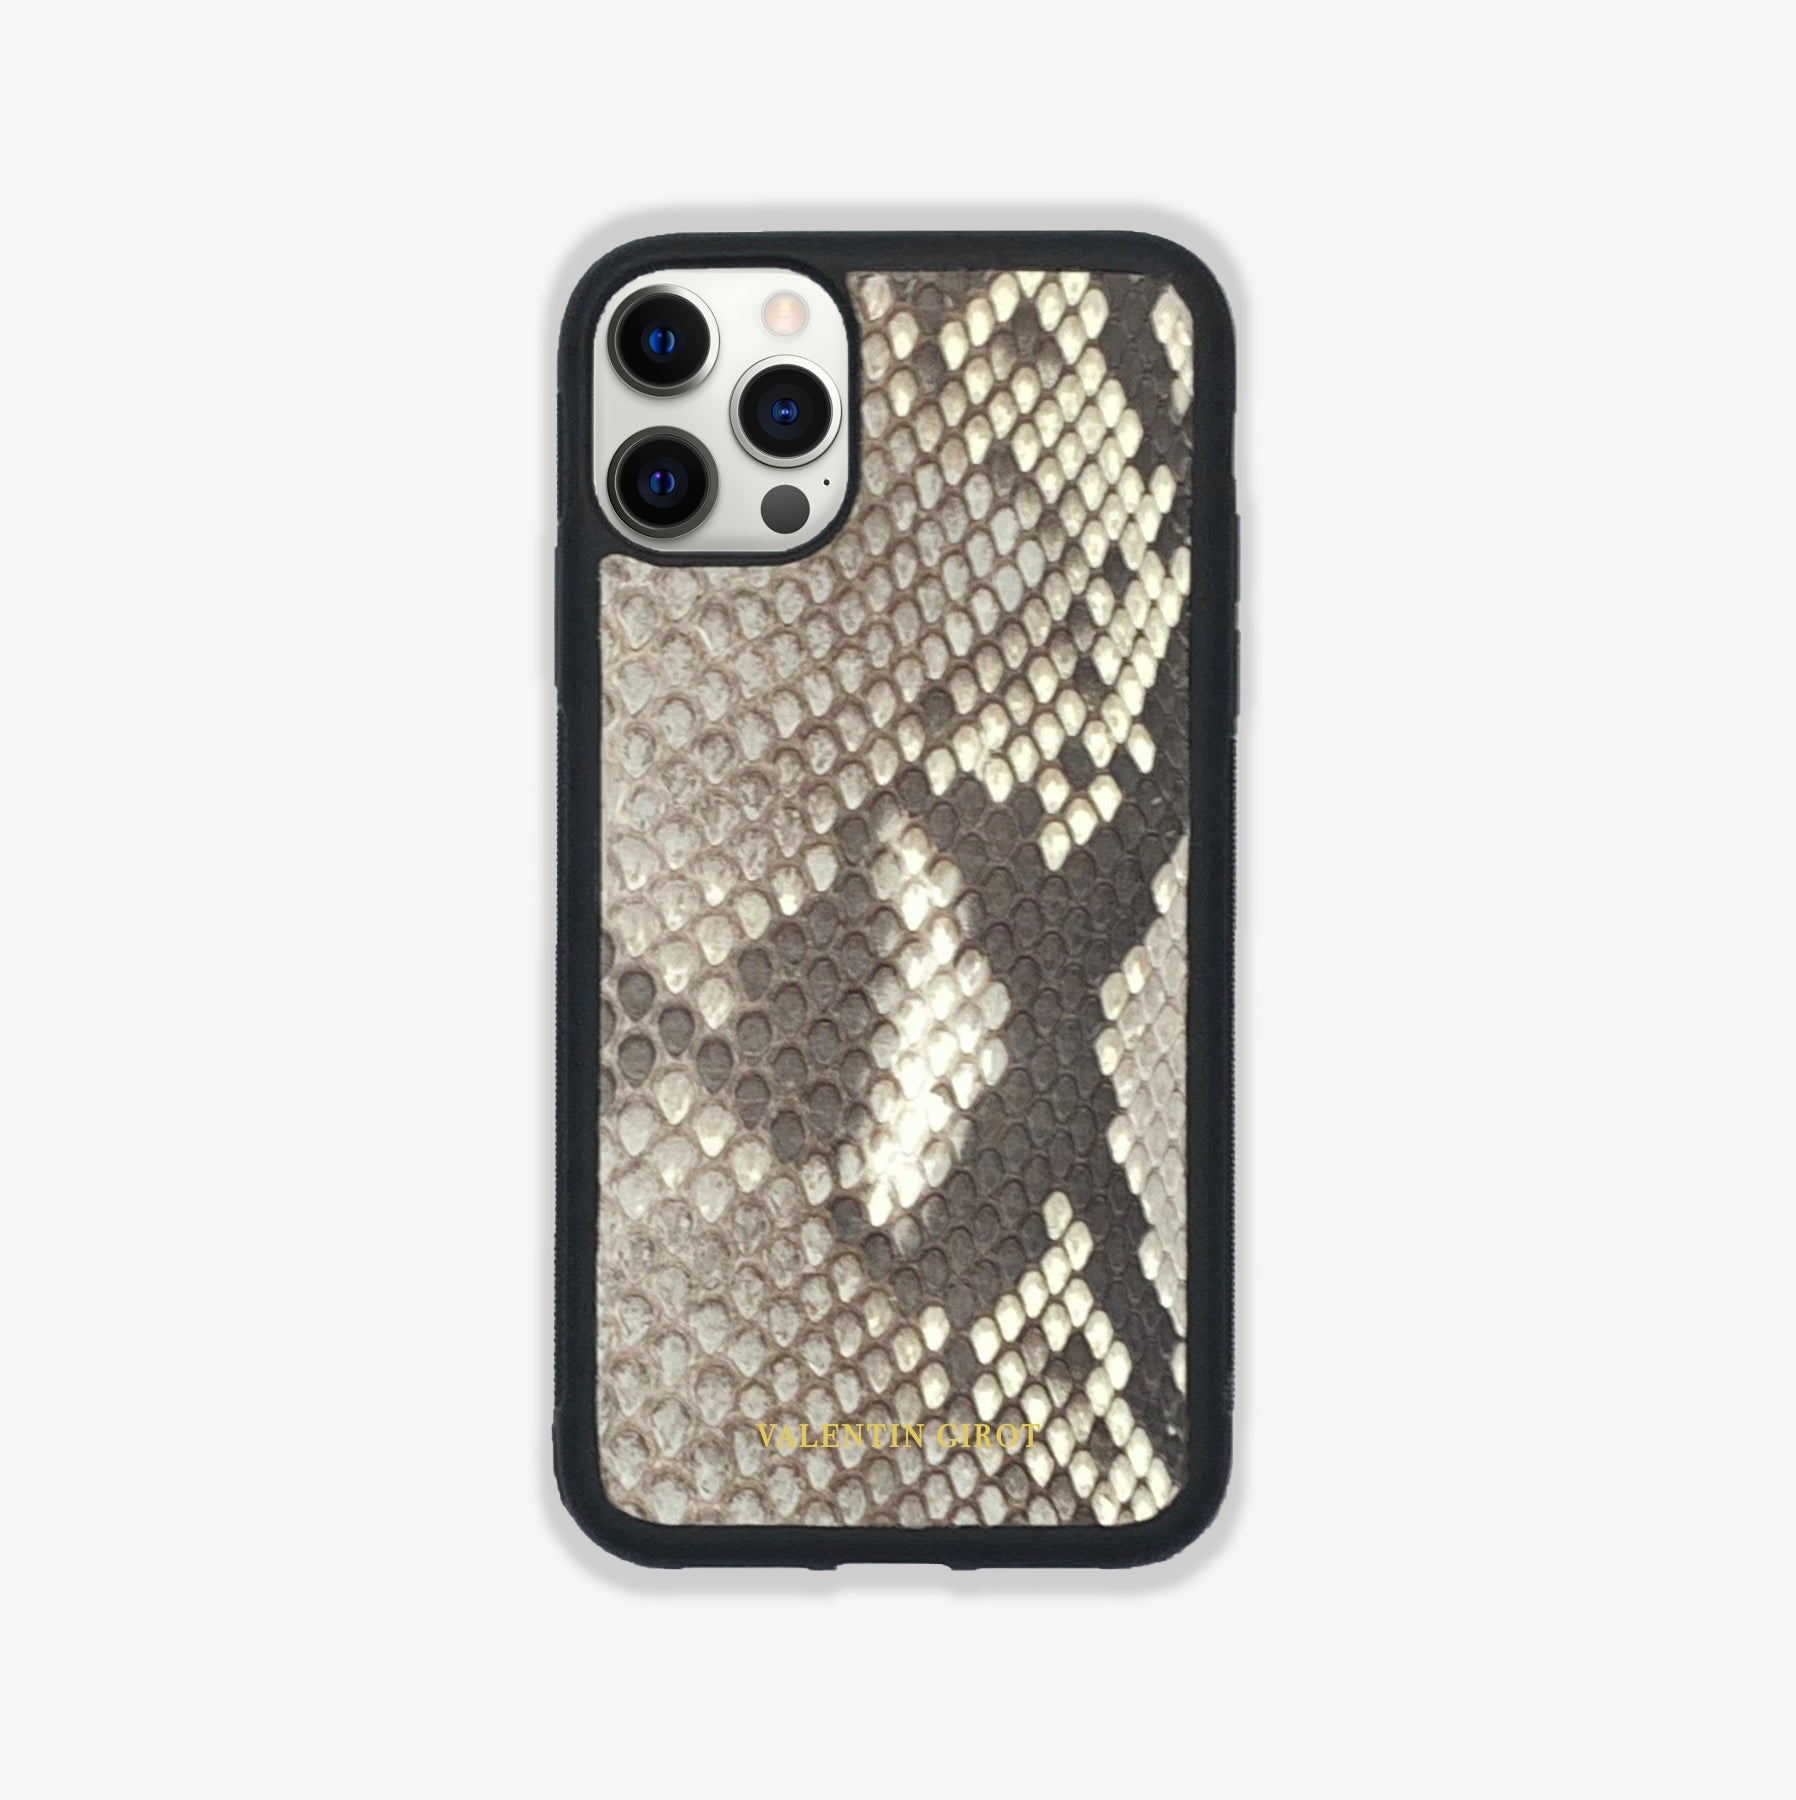 COQUE IPHONE 12 PRO MAX NATUREL ÉCAILLES